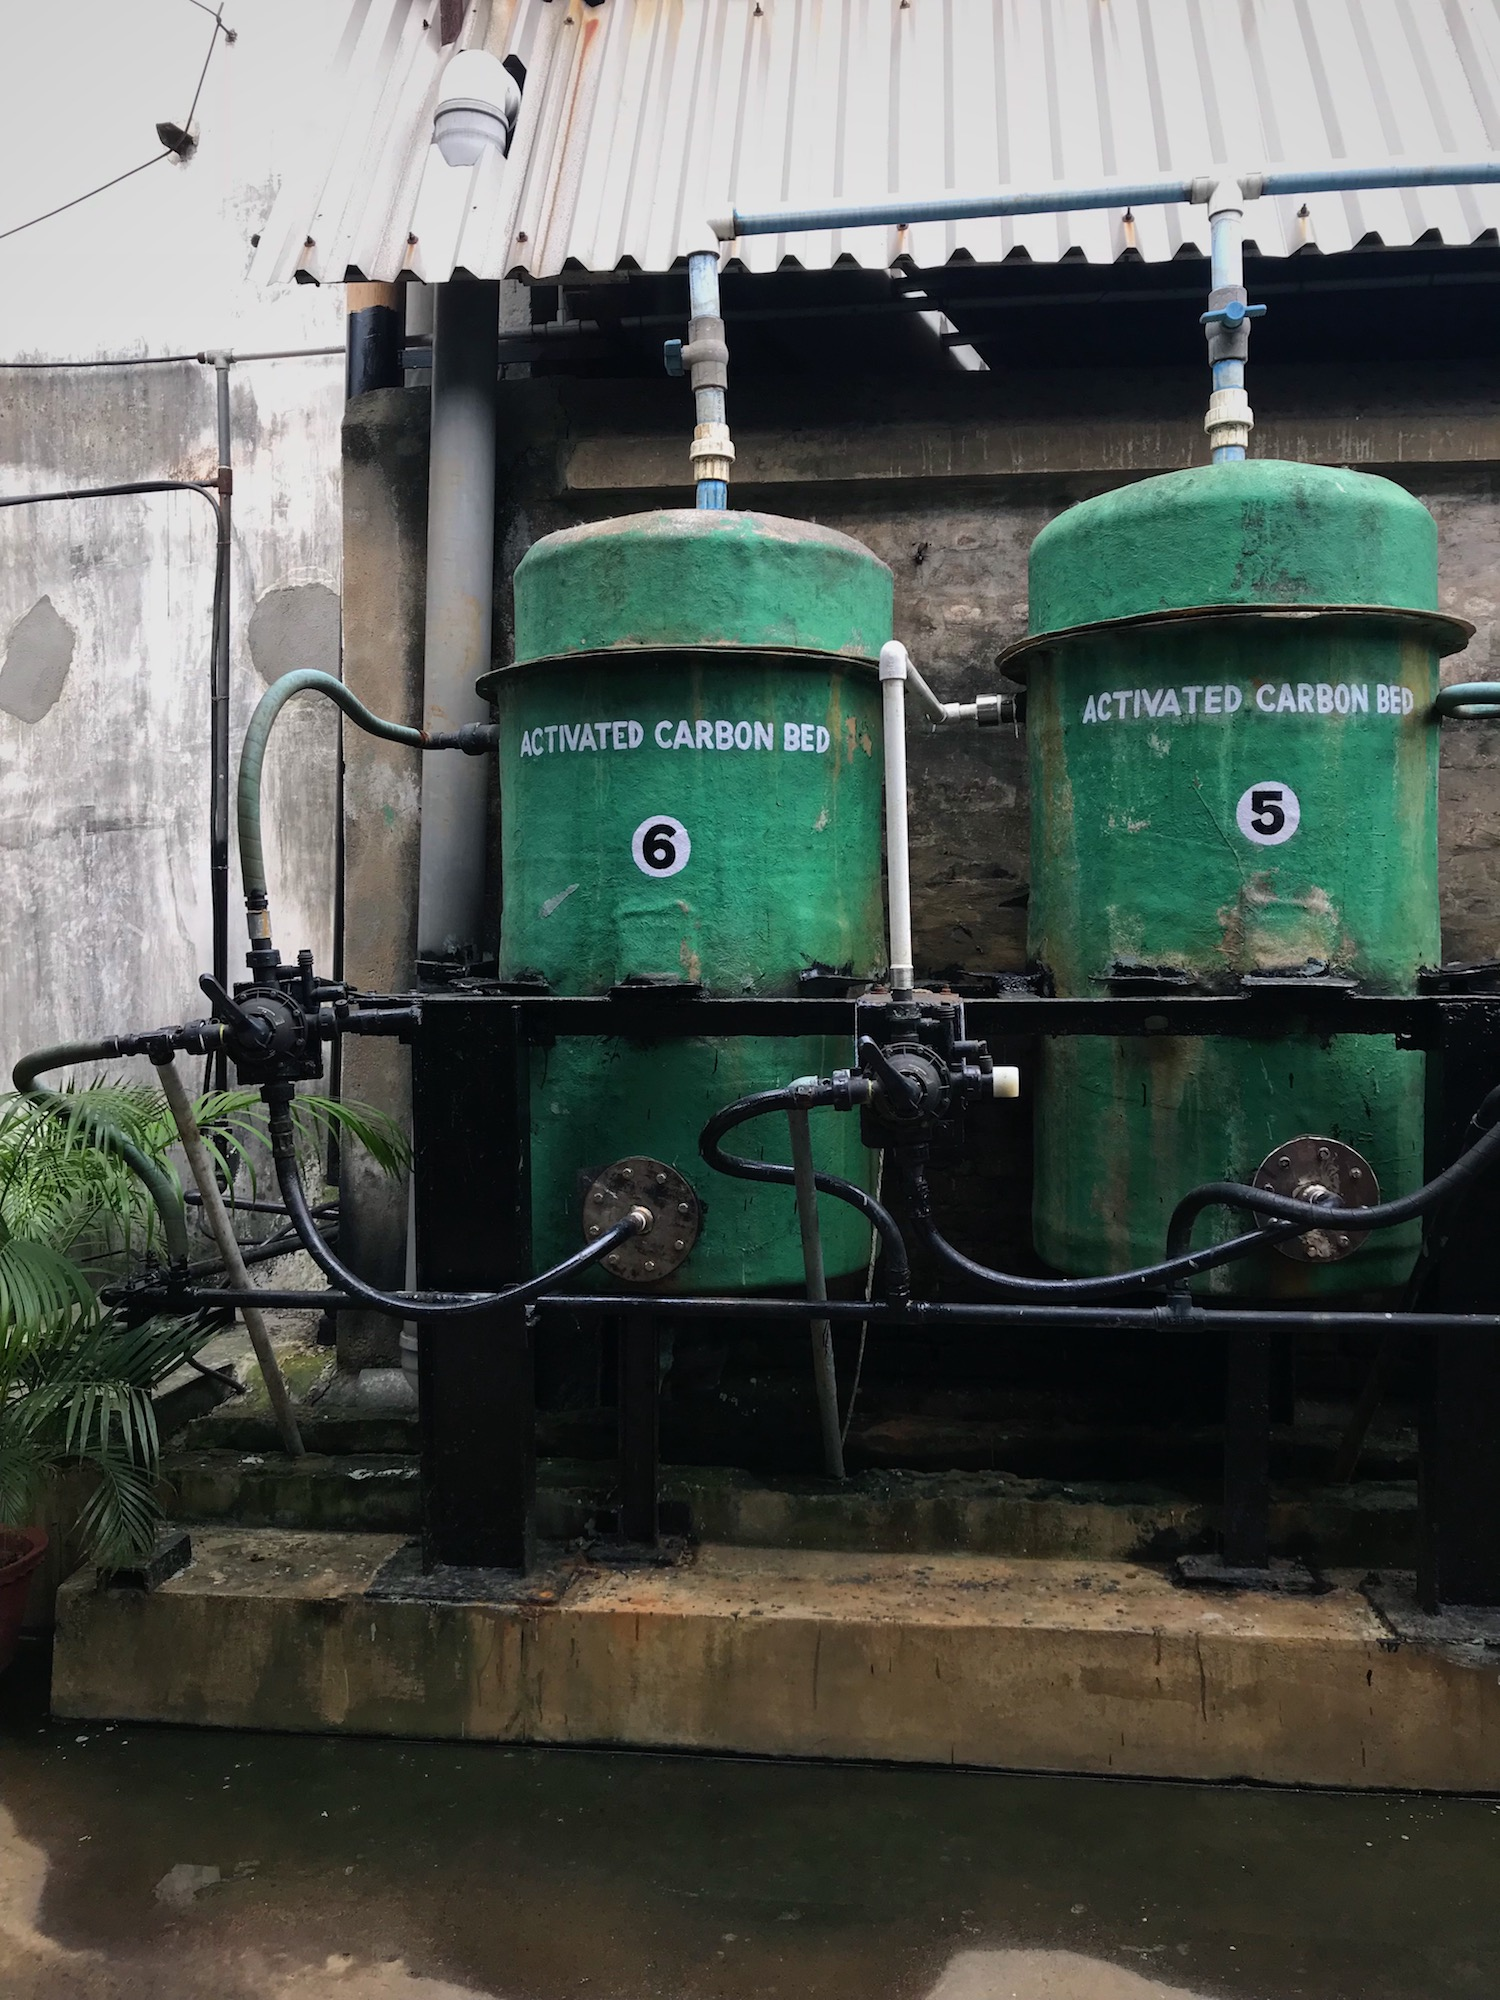 activated carbon bed tanks